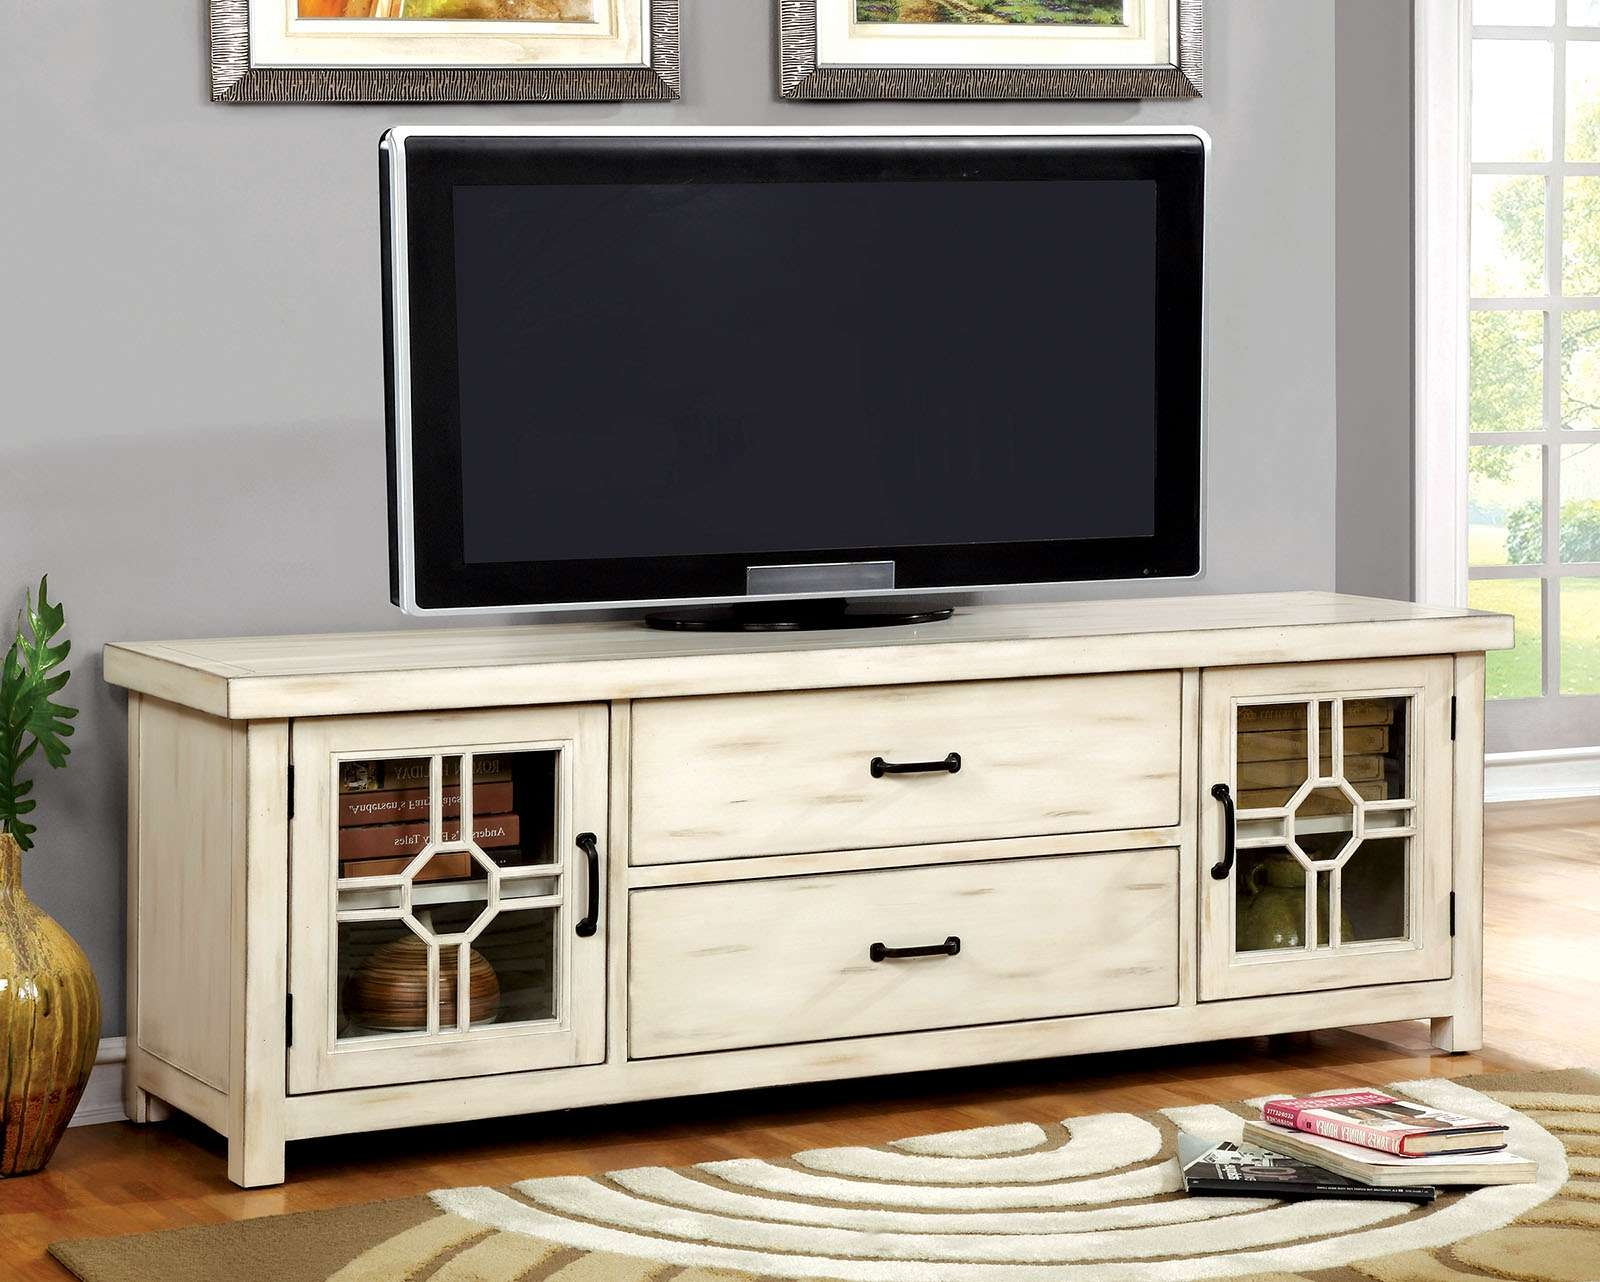 Furniture Of America Cm5230 Antique White Lift Top Finish Tv Stand Pertaining To Rustic White Tv Stands (View 4 of 15)